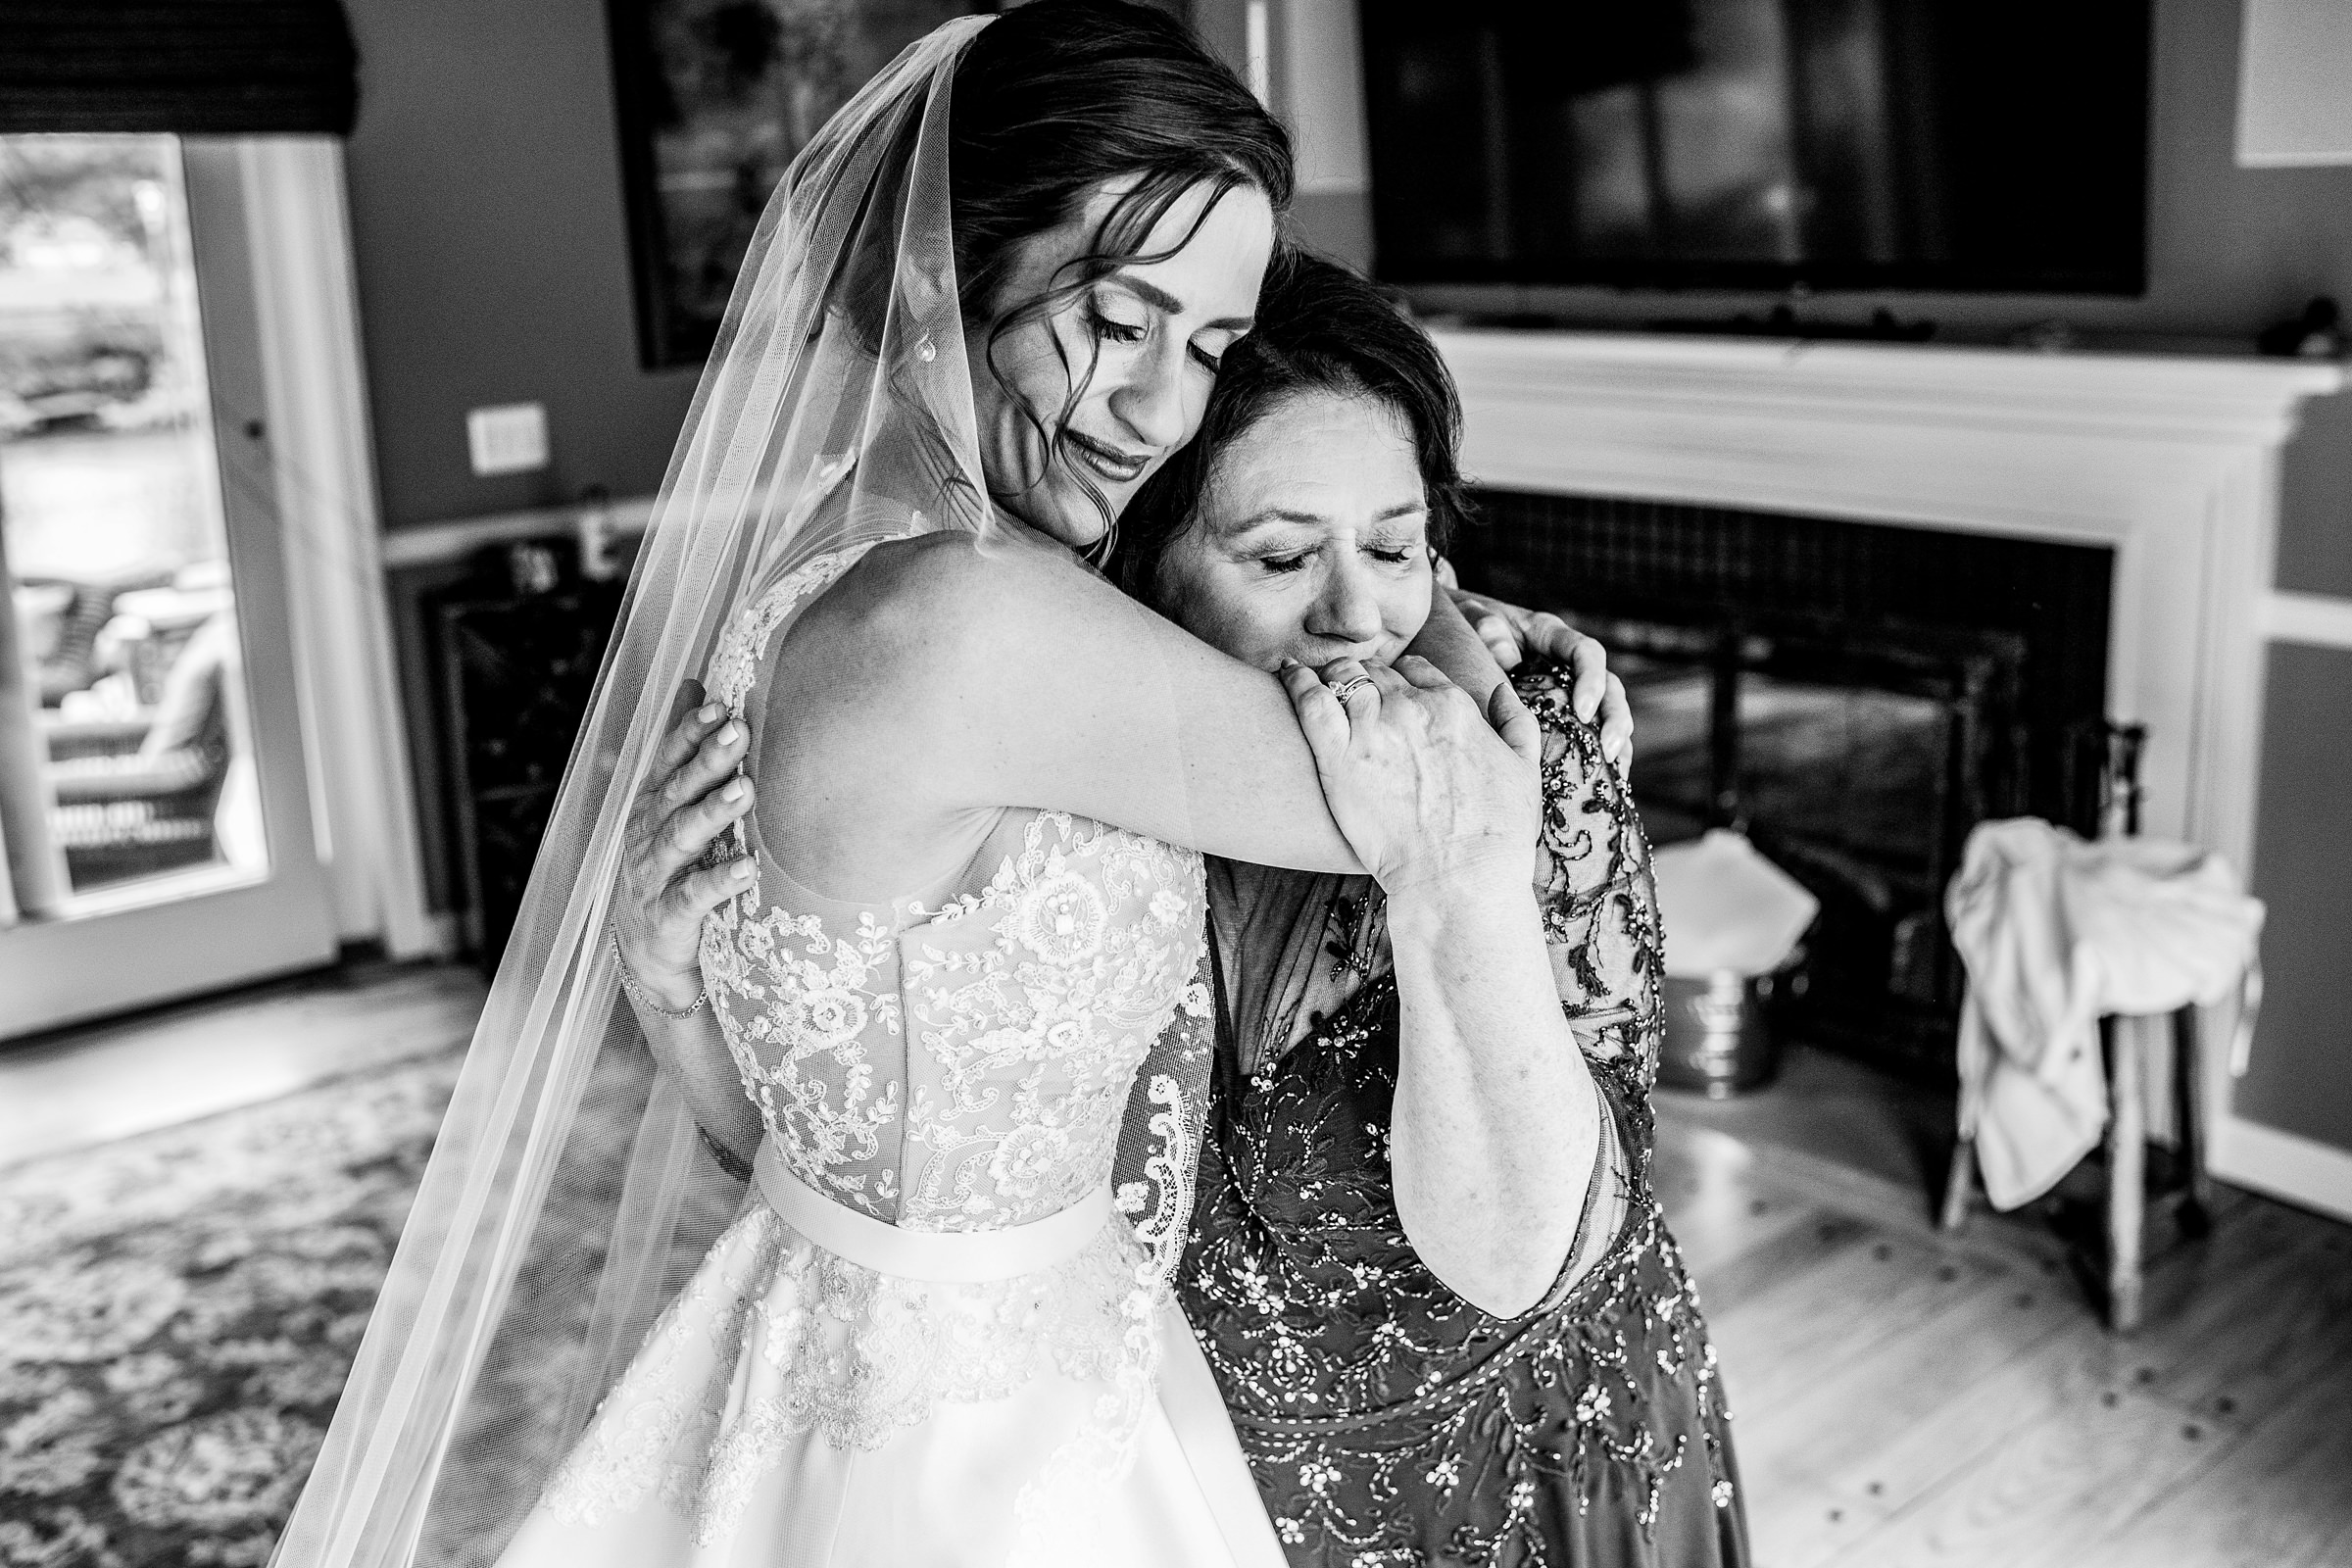 Bride and mother hug in a moment alone  - photo by Jeff Tisman Photography, New York